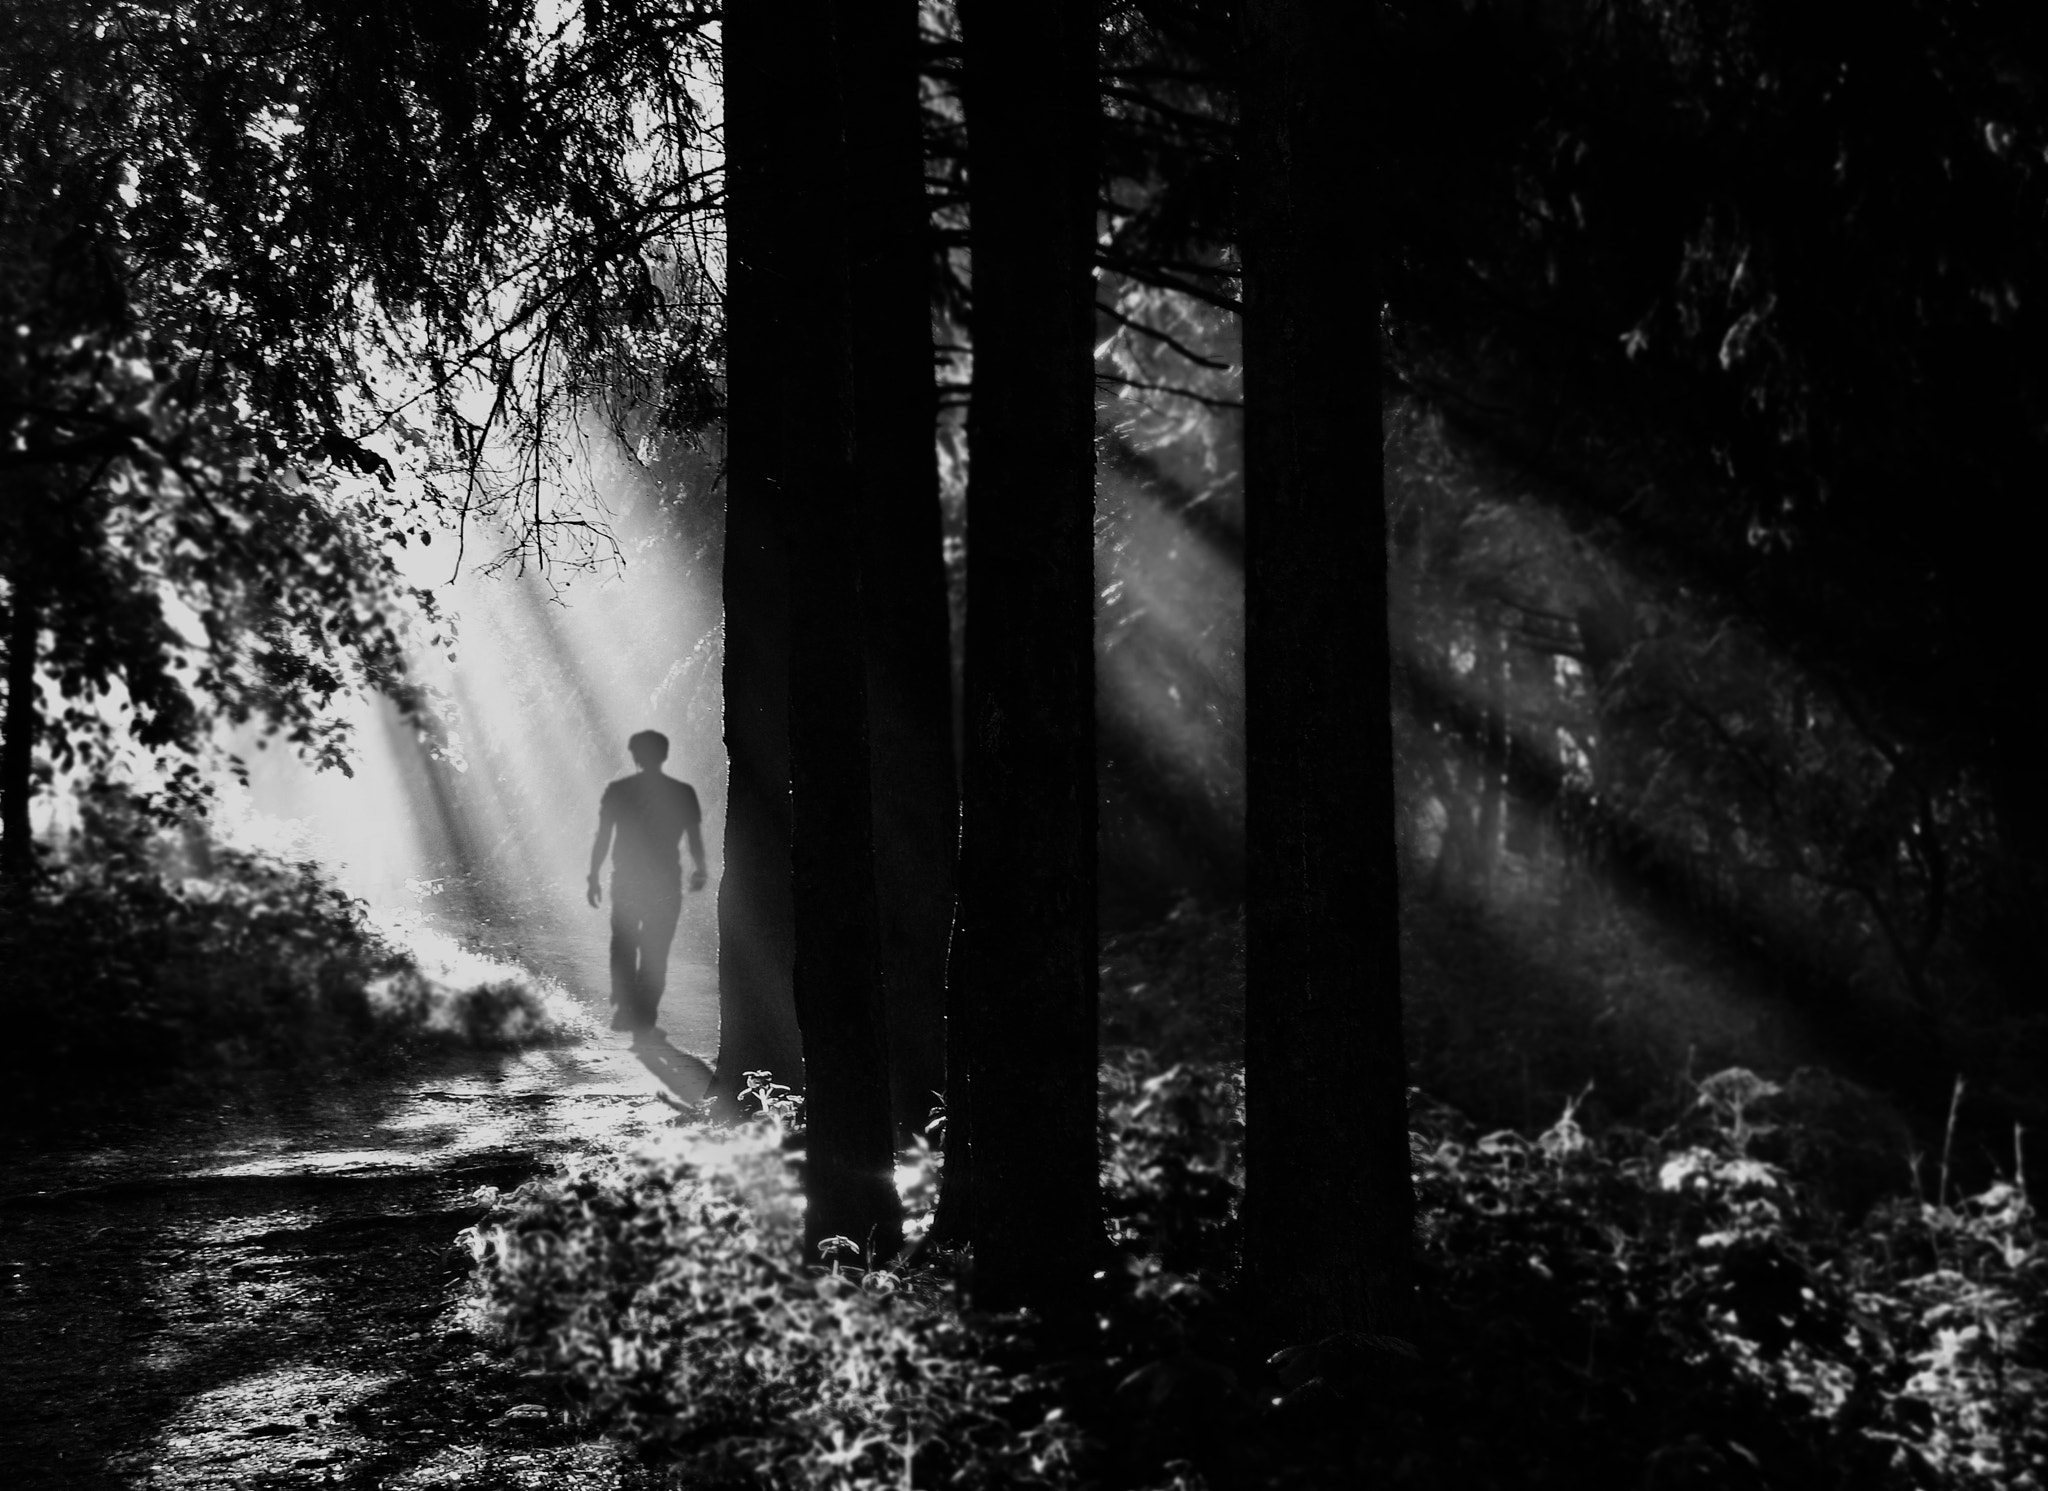 Photograph The Man In The Forest by Dmytro Zaverukha on 500px